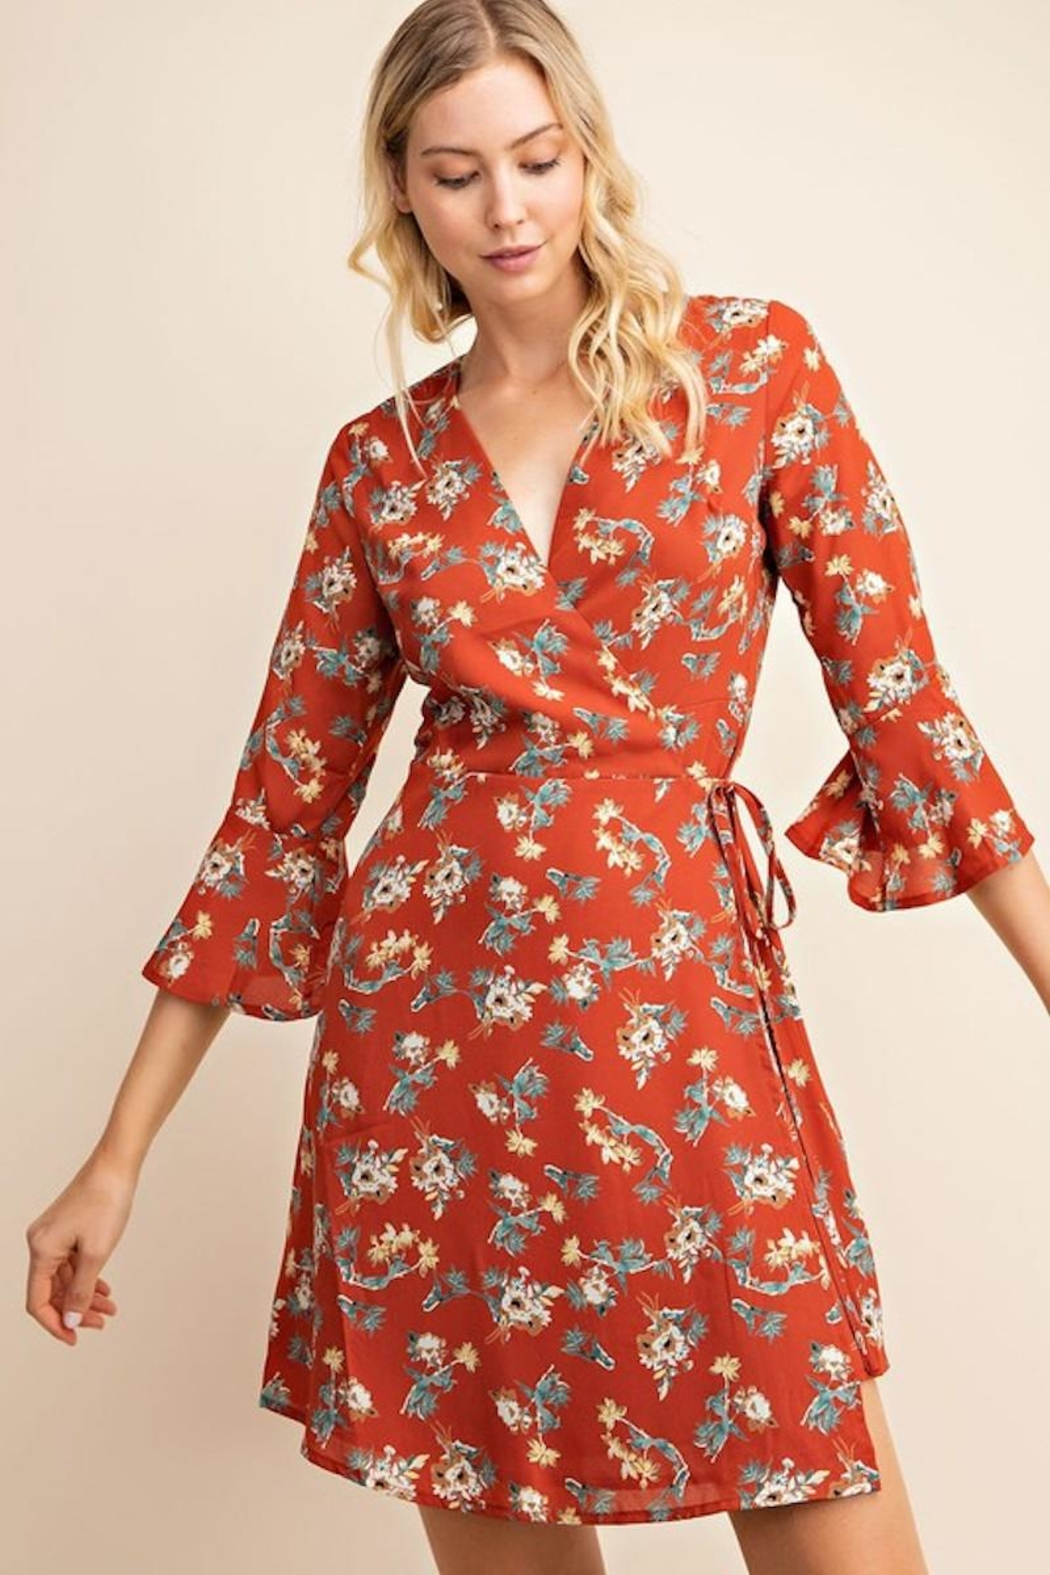 Gilli USA Rust Floral Wrap Dress - Main Image